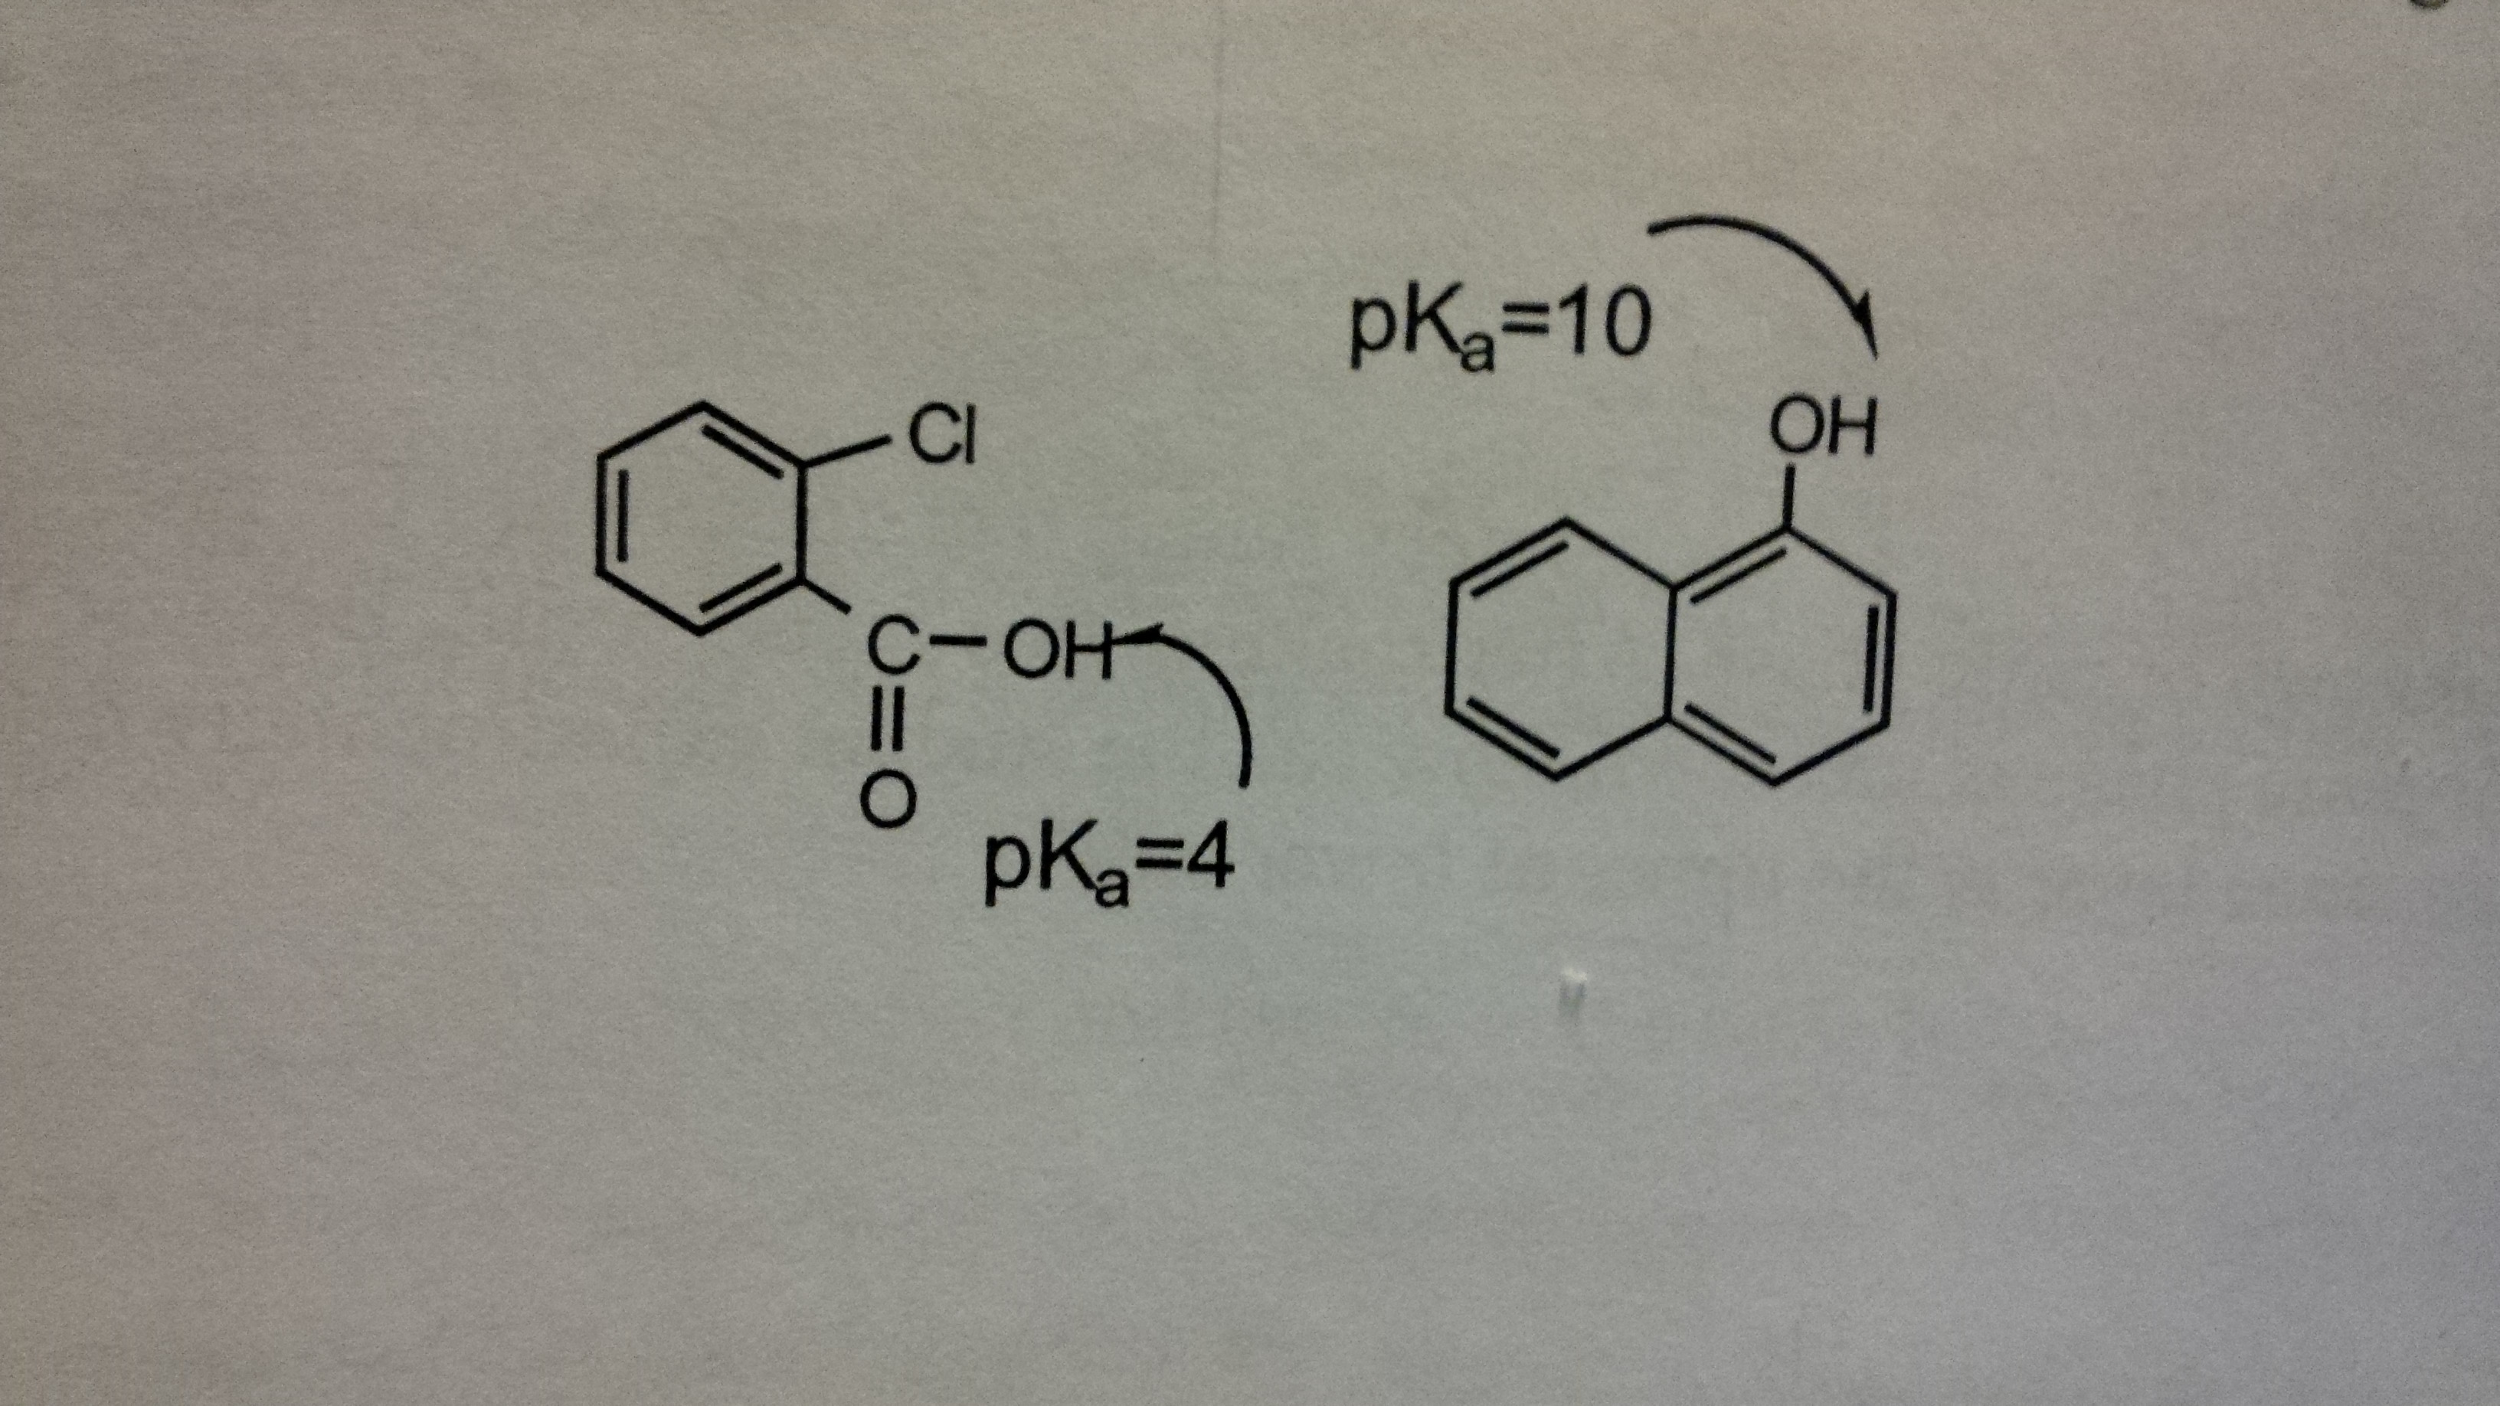 Below are the structures of two organic compounds.